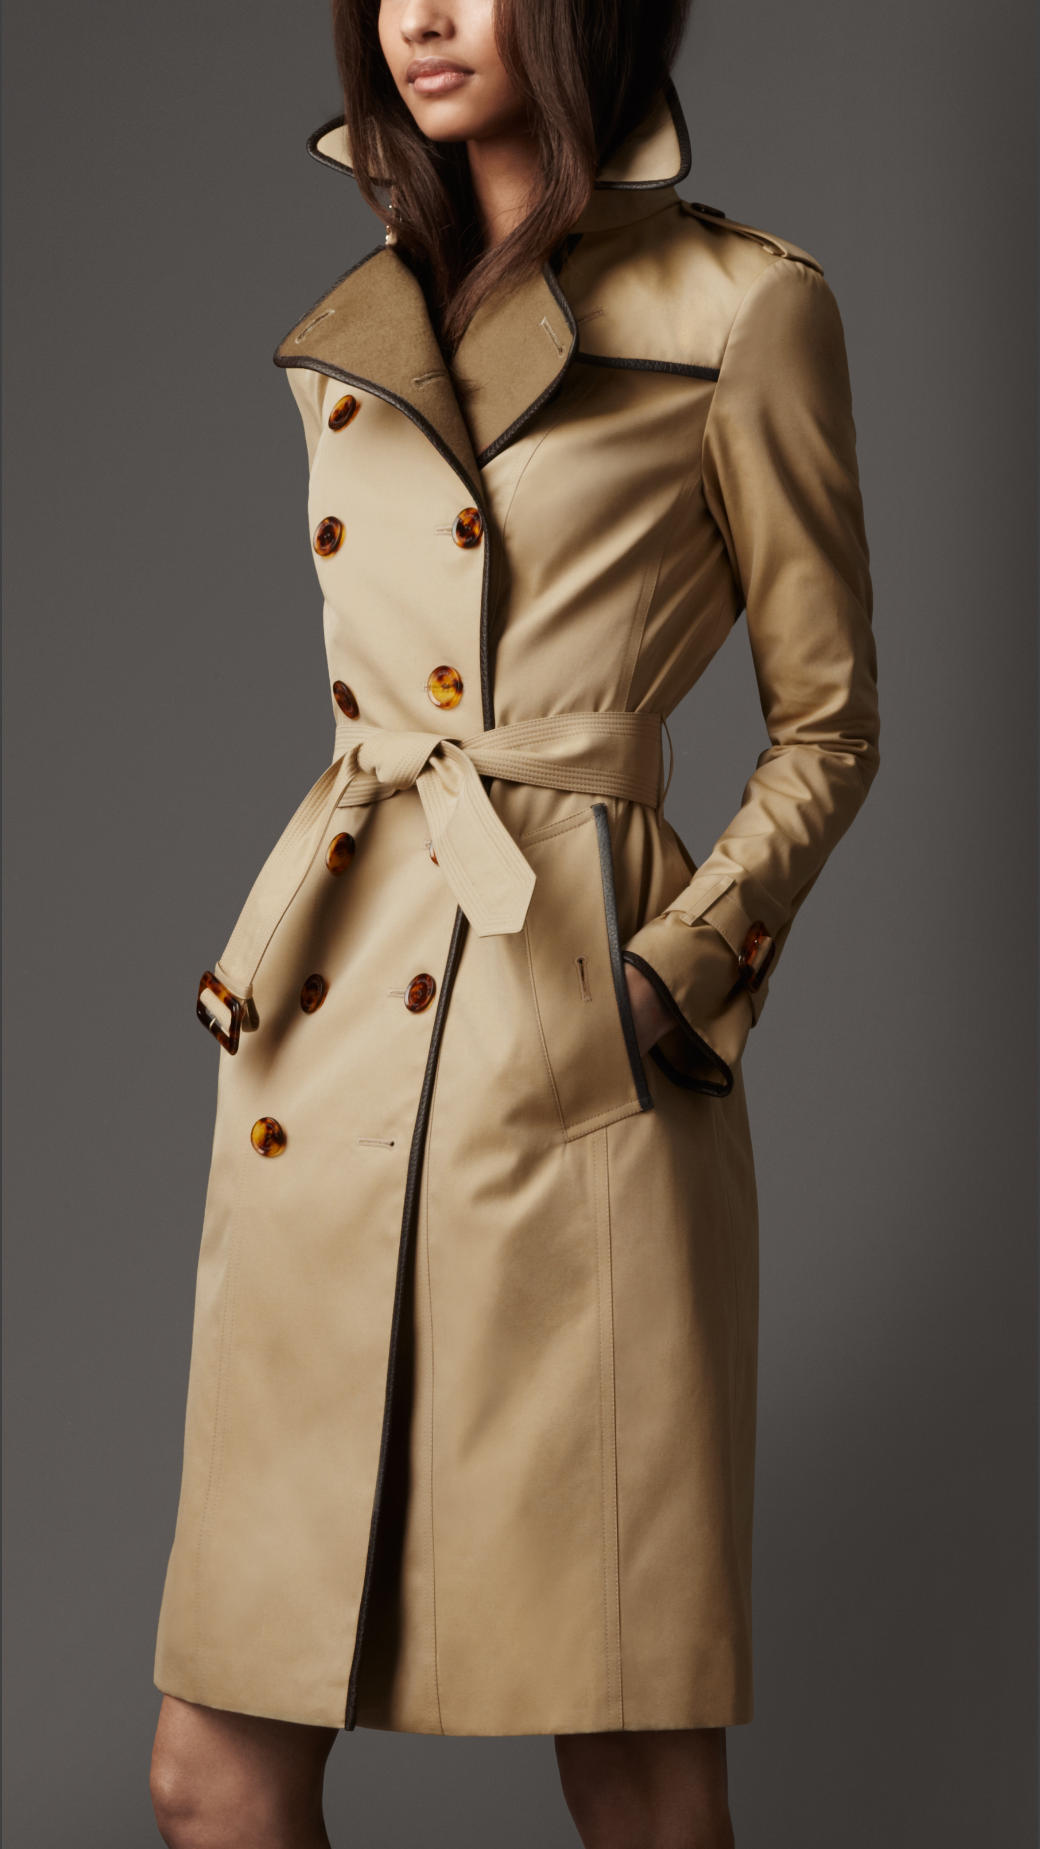 burberry gabardine wool detail trench coat in natural lyst. Black Bedroom Furniture Sets. Home Design Ideas